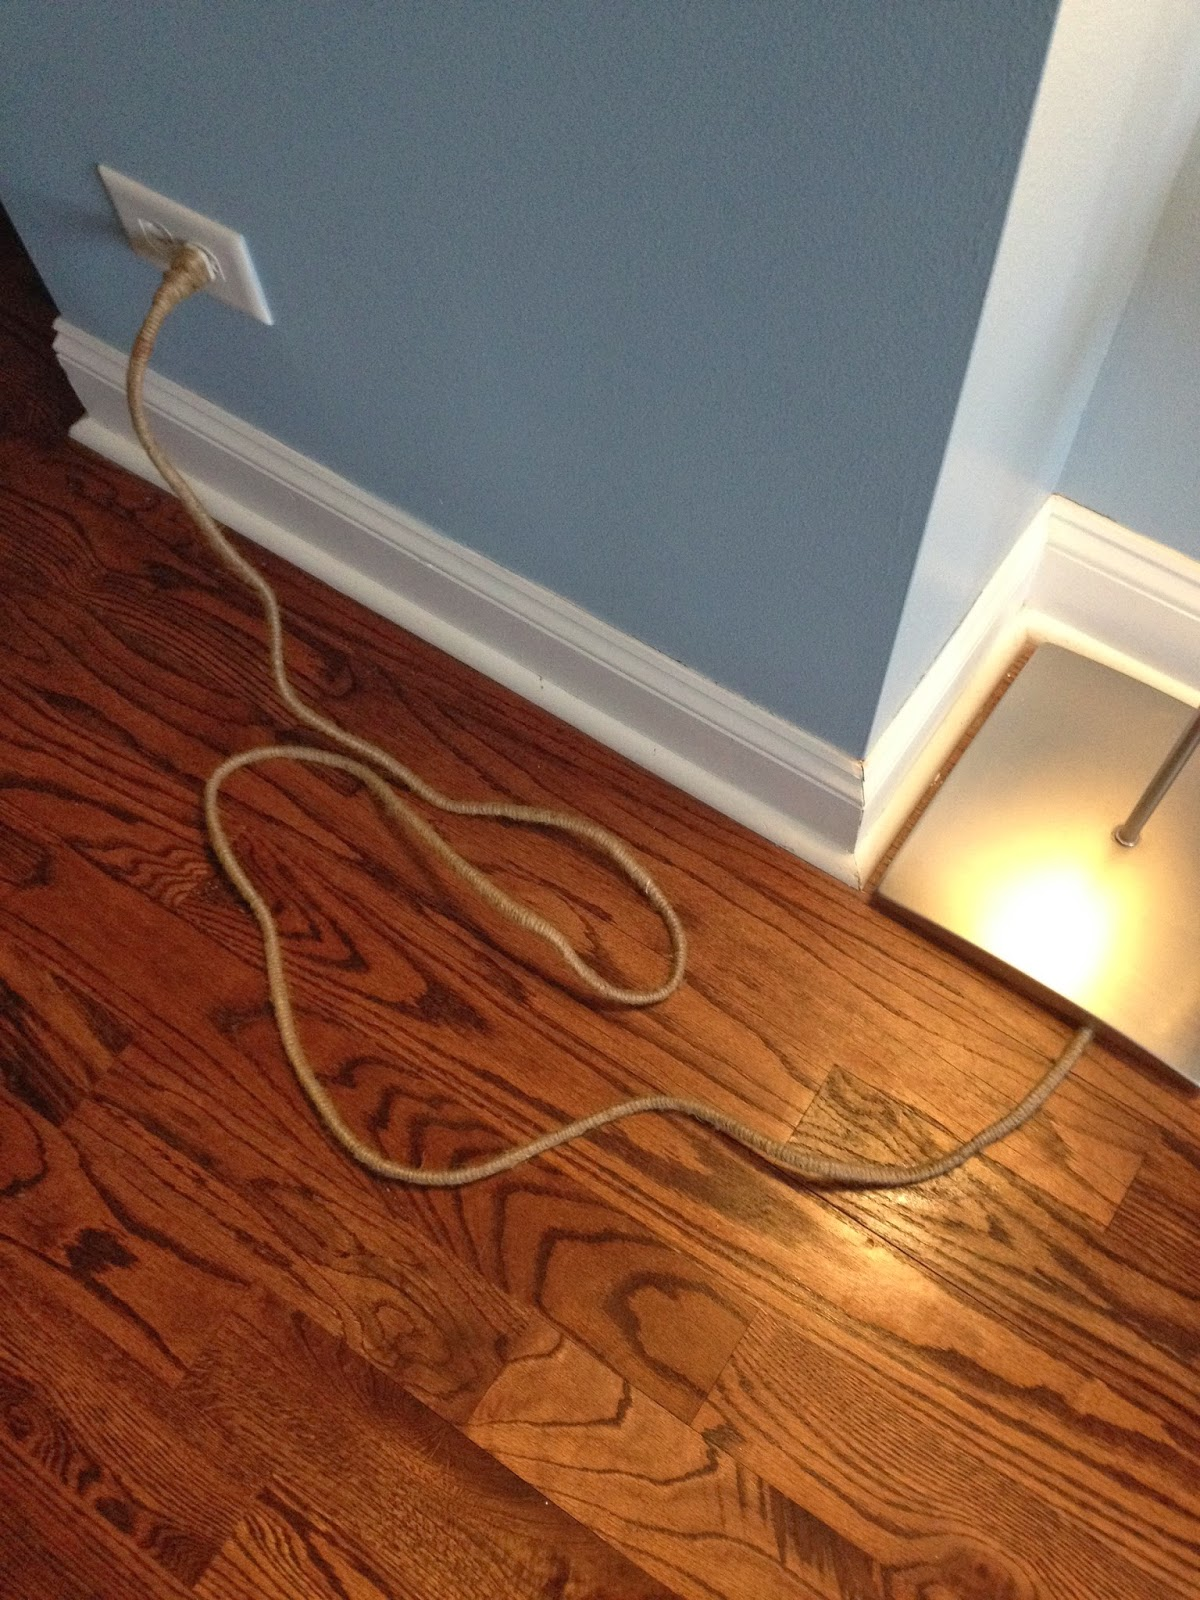 twine covered power cord